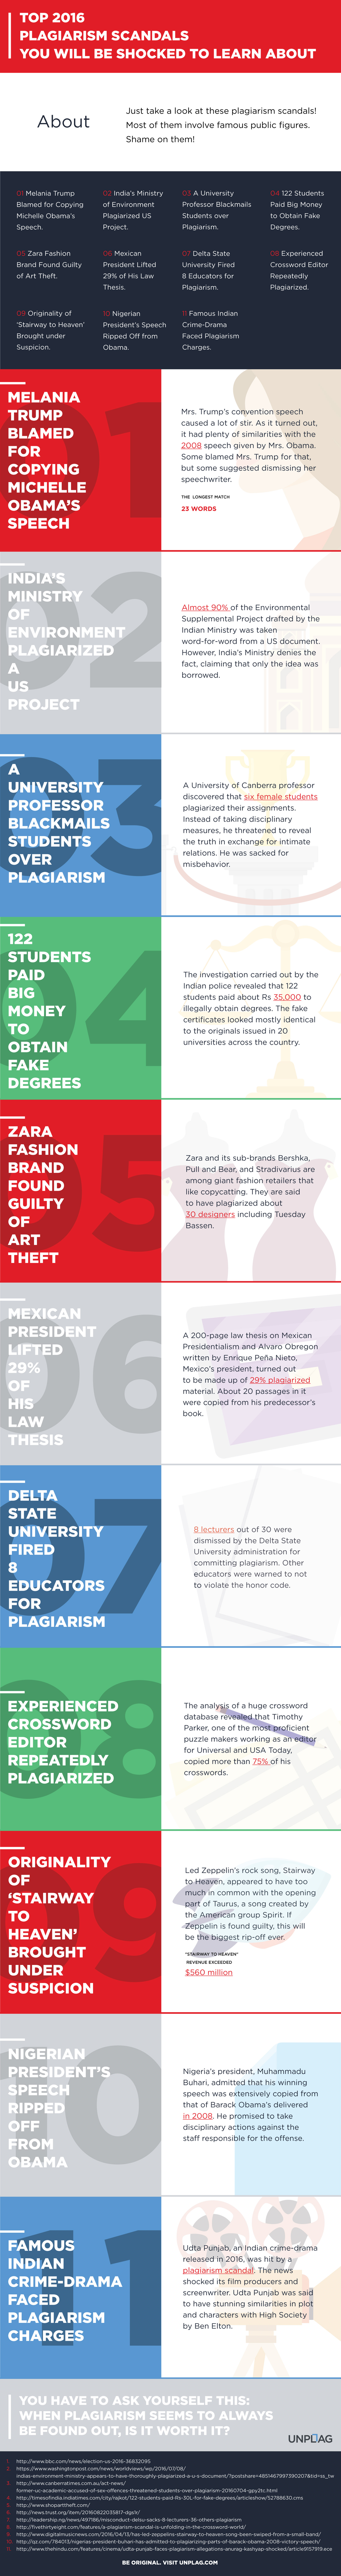 Top 2016 Plagiarism Scandals [Infographic]